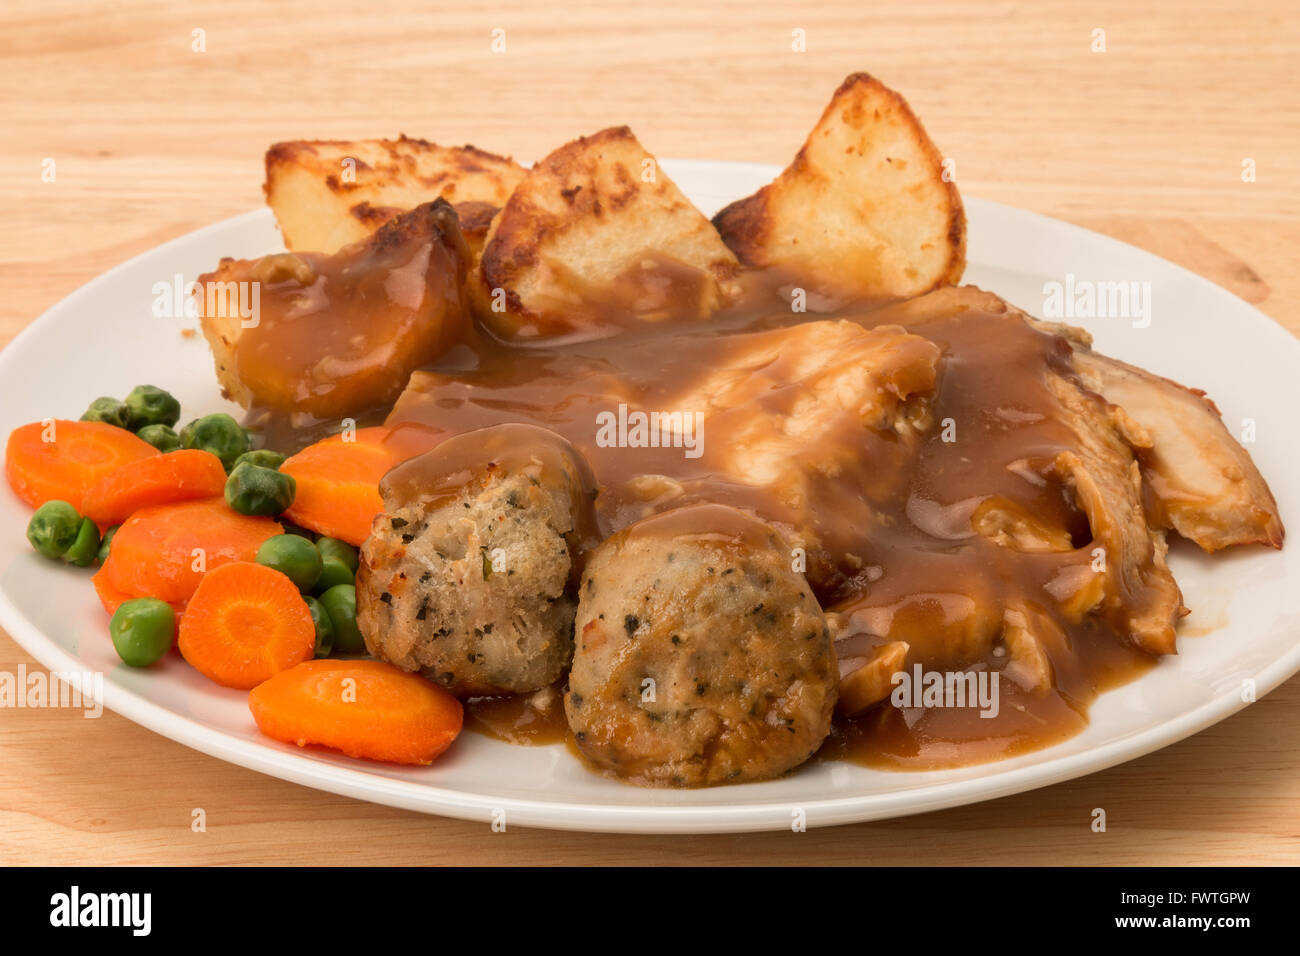 A roasted chicken dinner with carrot and peas, sage and onion stuffing balls, and gravy. - Stock Image